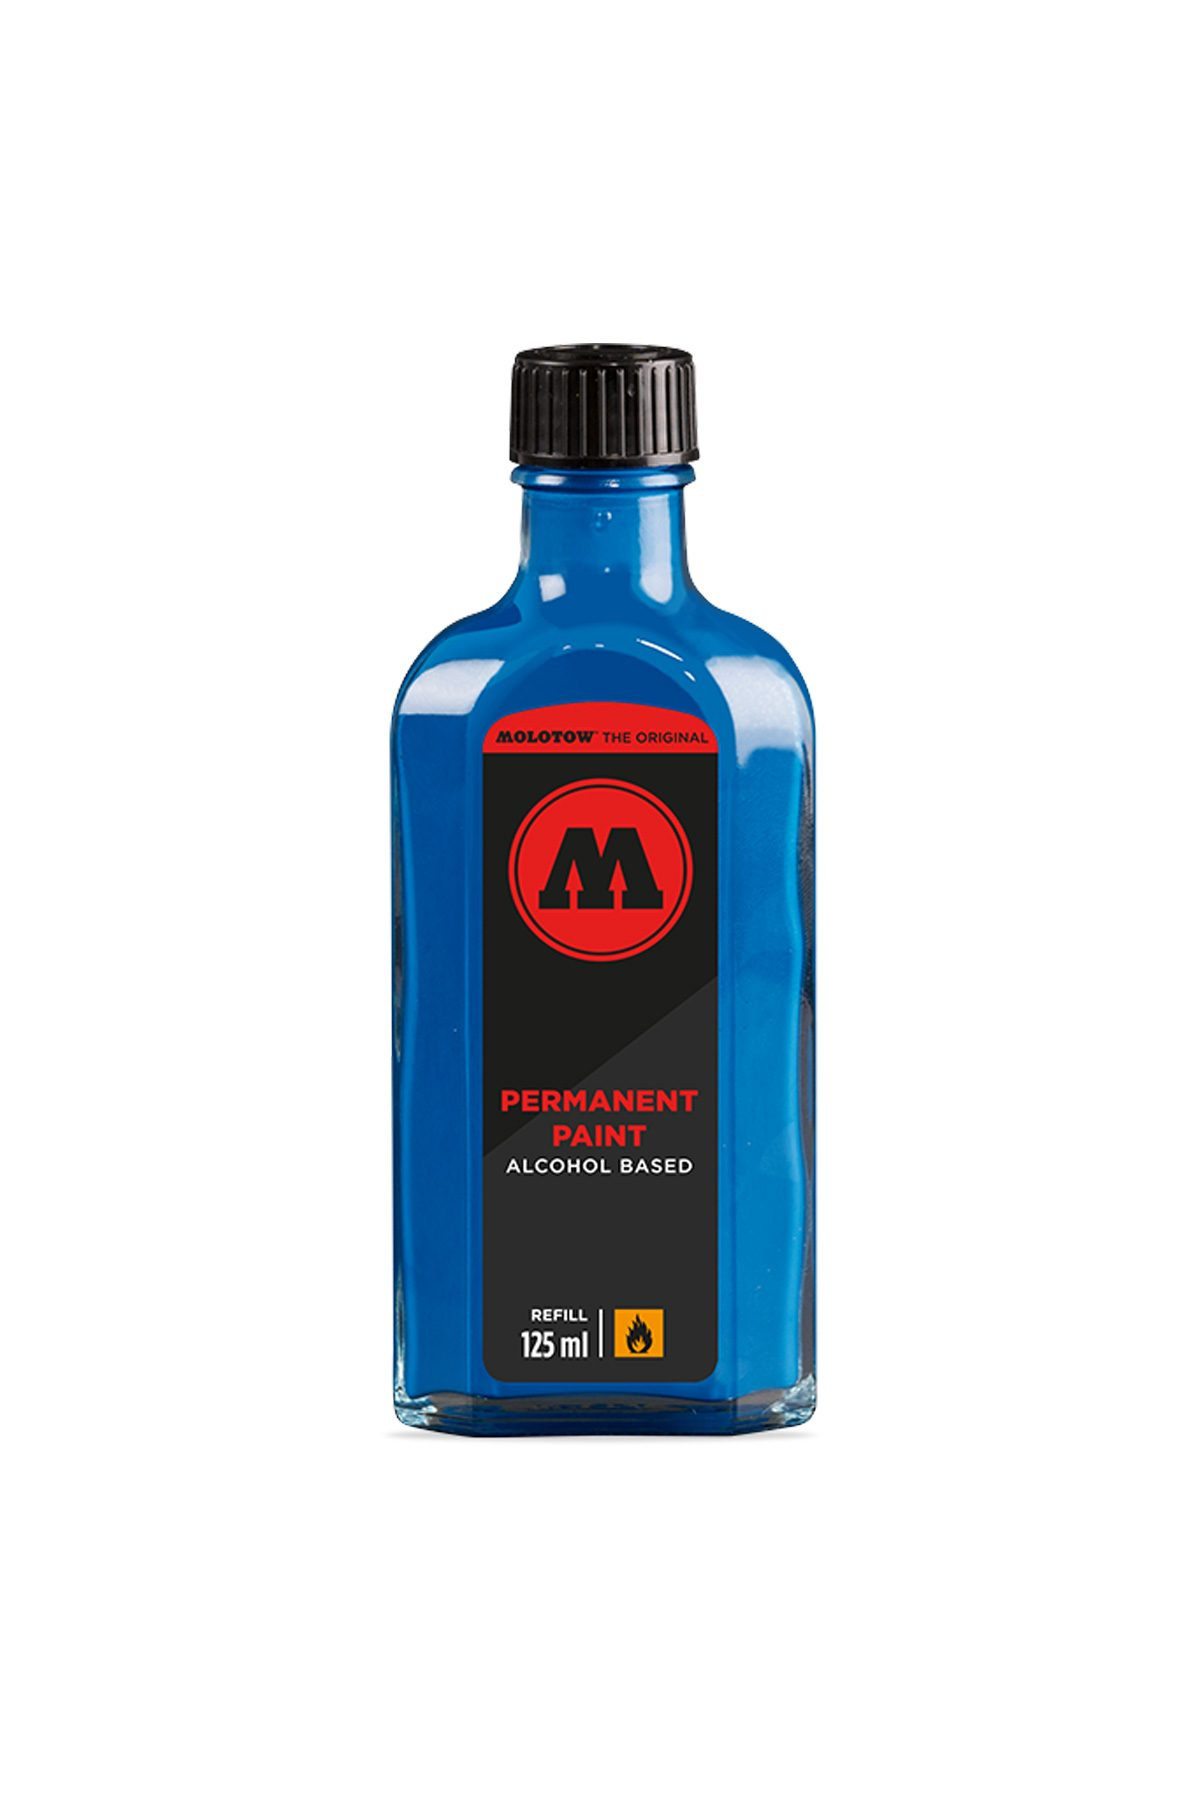 Molotow PERMANENT-PAINT Refill 125ml